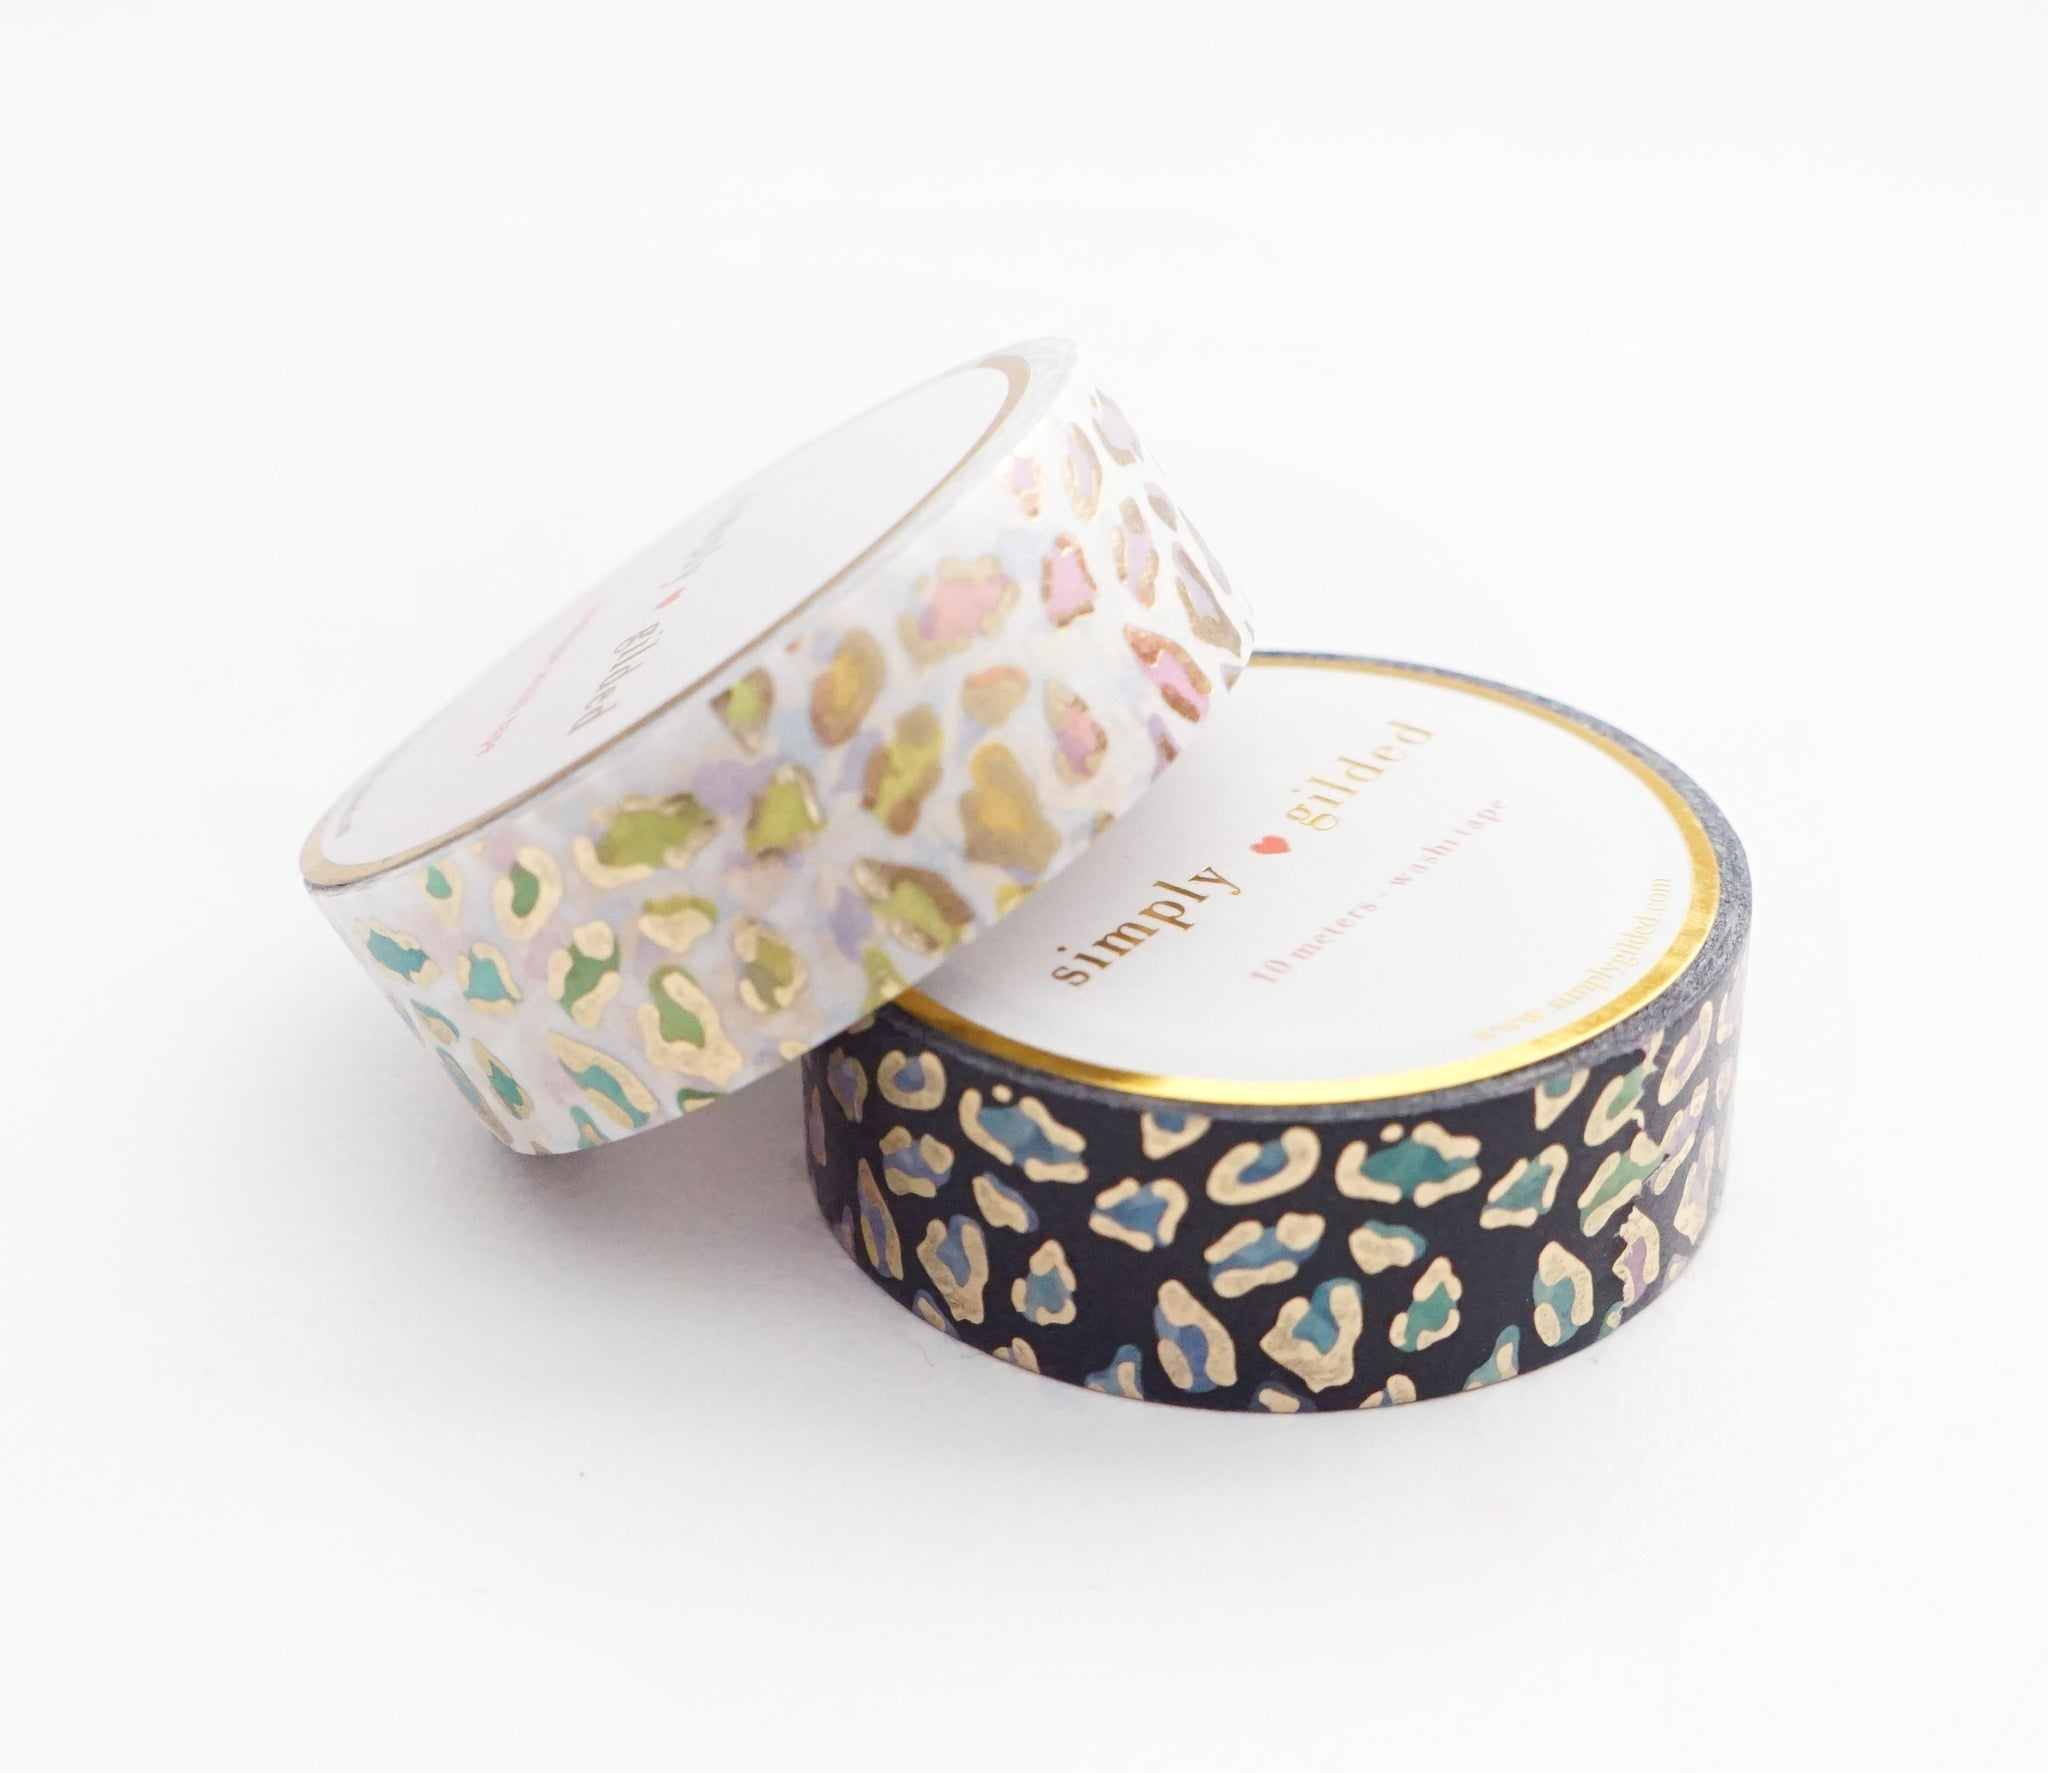 WASHI TAPE 15/15mm - WILD lucky leopard (Black/White) + LIGHT GOLD foil (February 28 Release)